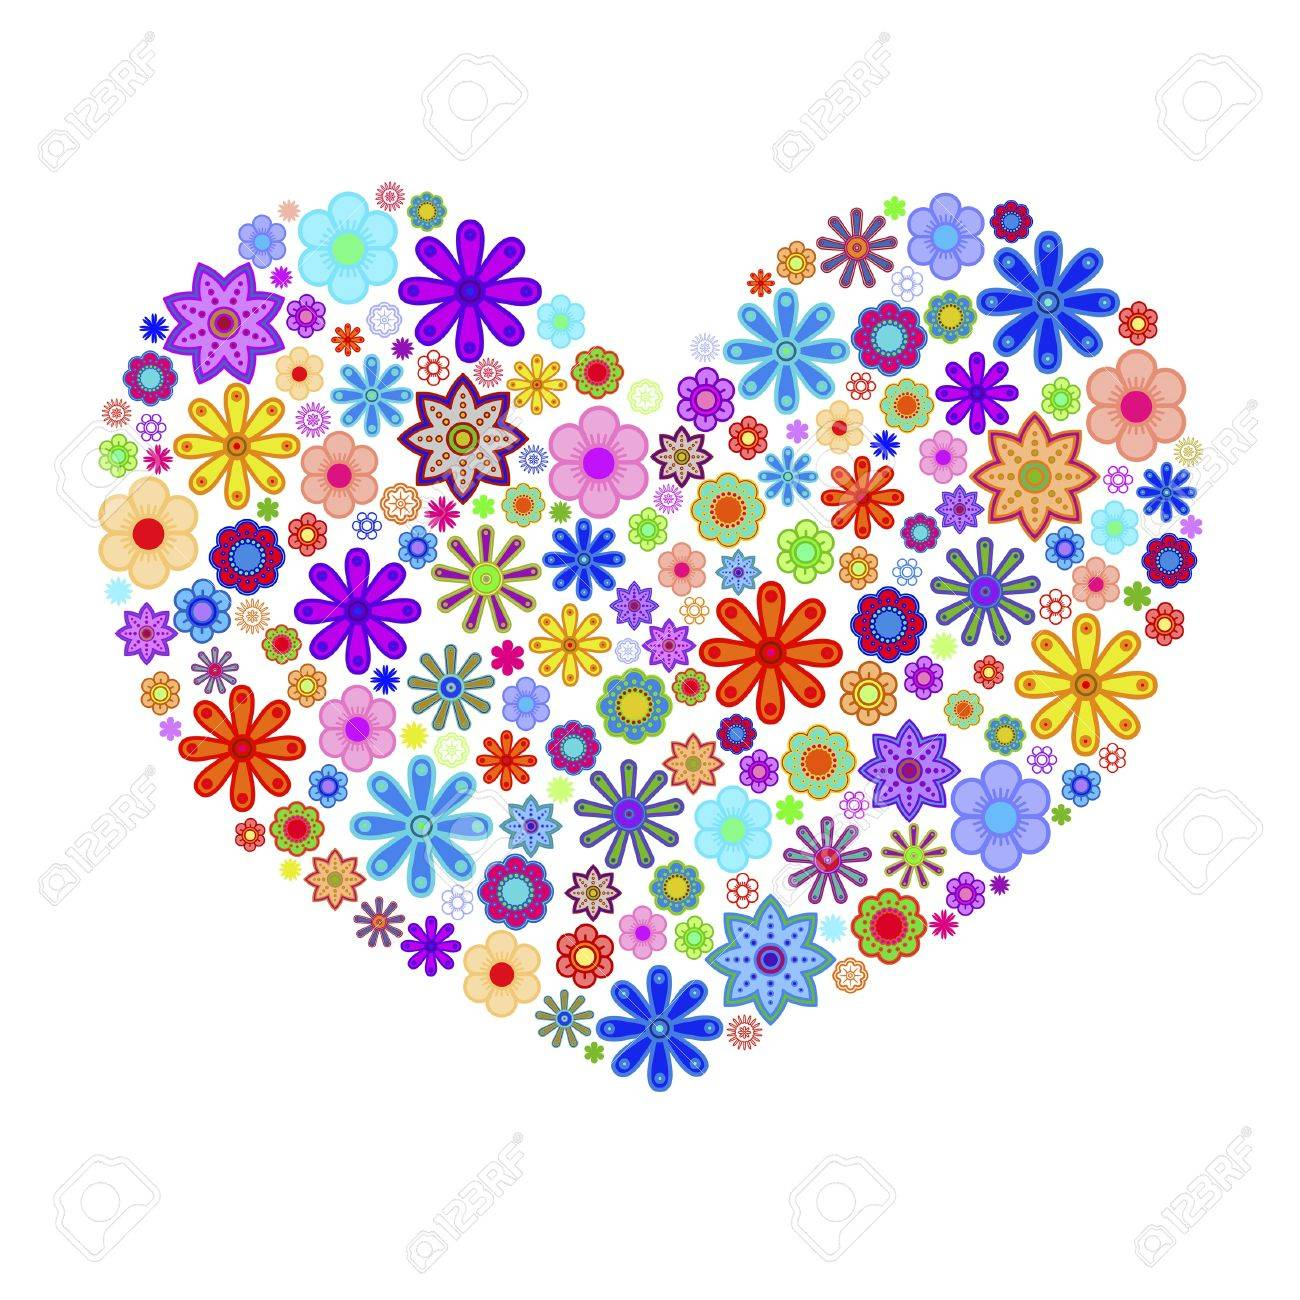 Happy Valentines Day Heart with Colorful Flowers Illustration Stock Photo - 8593106